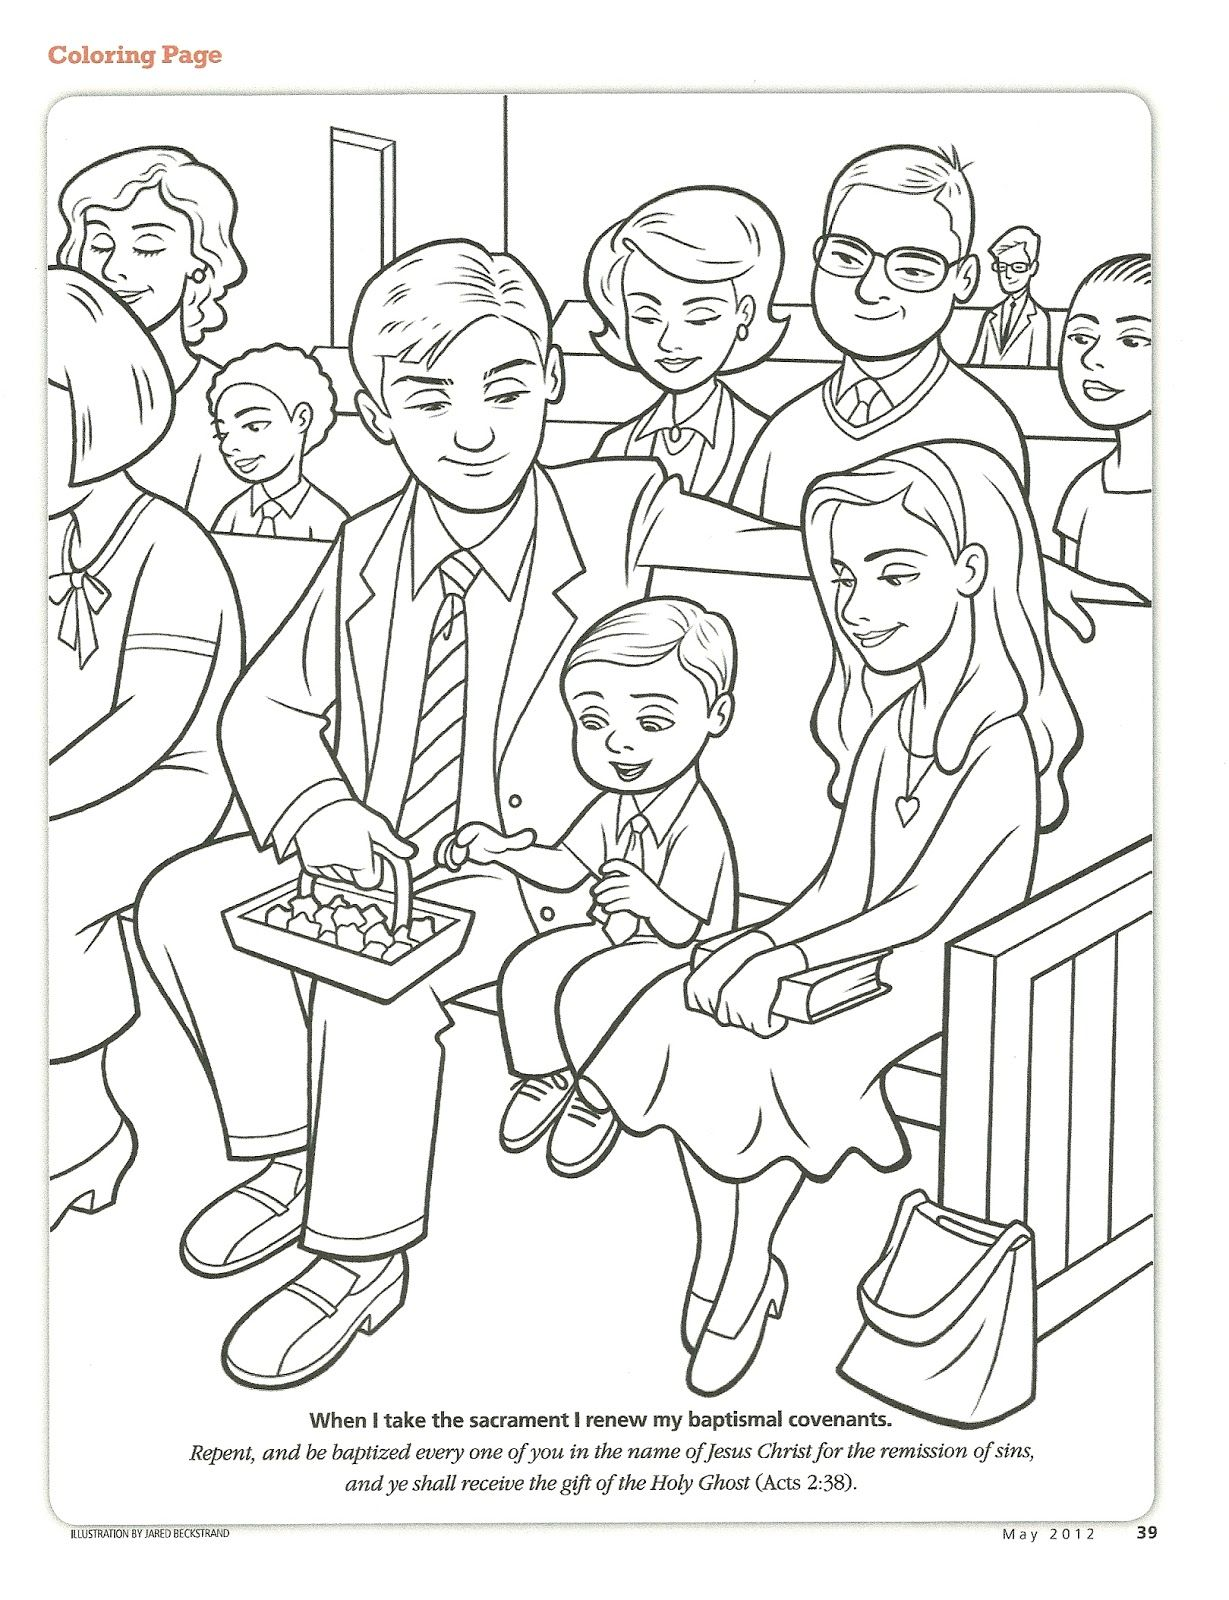 Primary 2 Lesson 38 Coloring Pages Bear Coloring Pages Lds Baptism